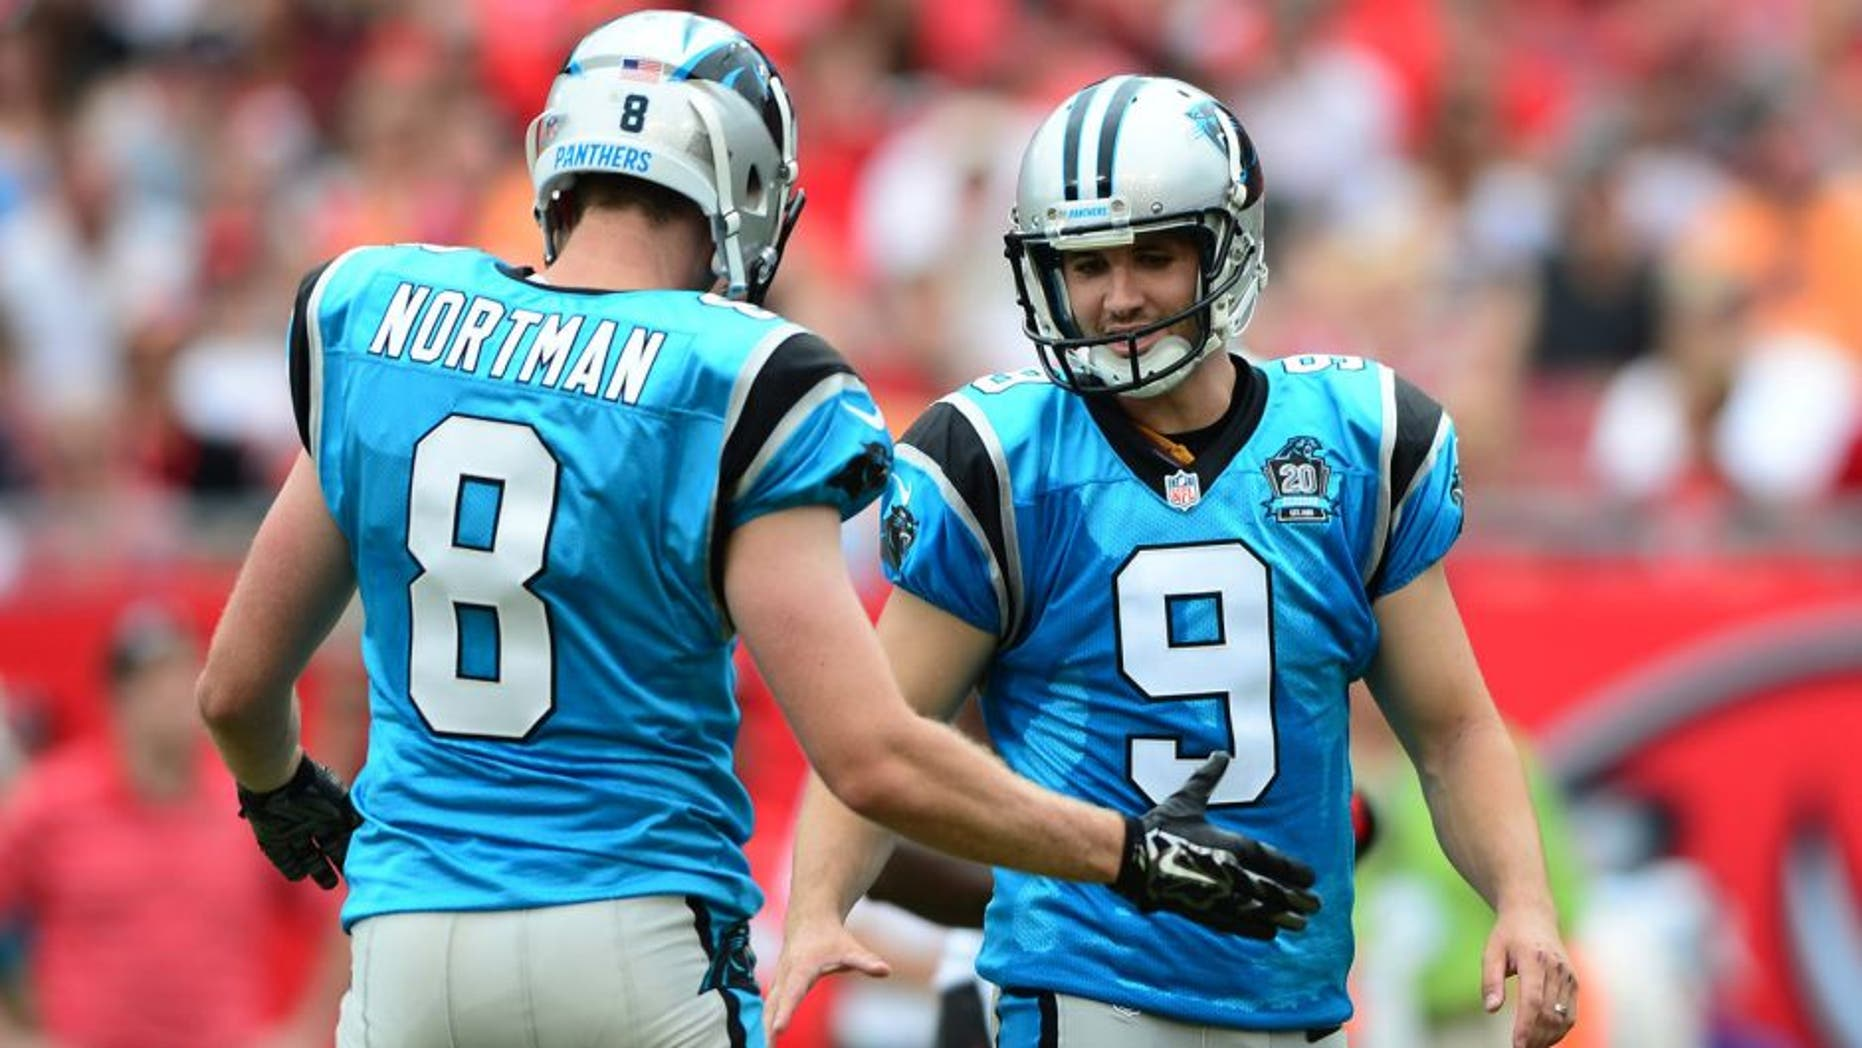 Sep 7, 2014; Tampa, FL, USA; Carolina Panthers punter Brad Nortman (8) congratulates kicker Graham Gano (9) after a field goal during the second quarter against the Tampa Bay Buccaneers at Raymond James Stadium. Mandatory Credit: Andrew Weber-USA TODAY Sports